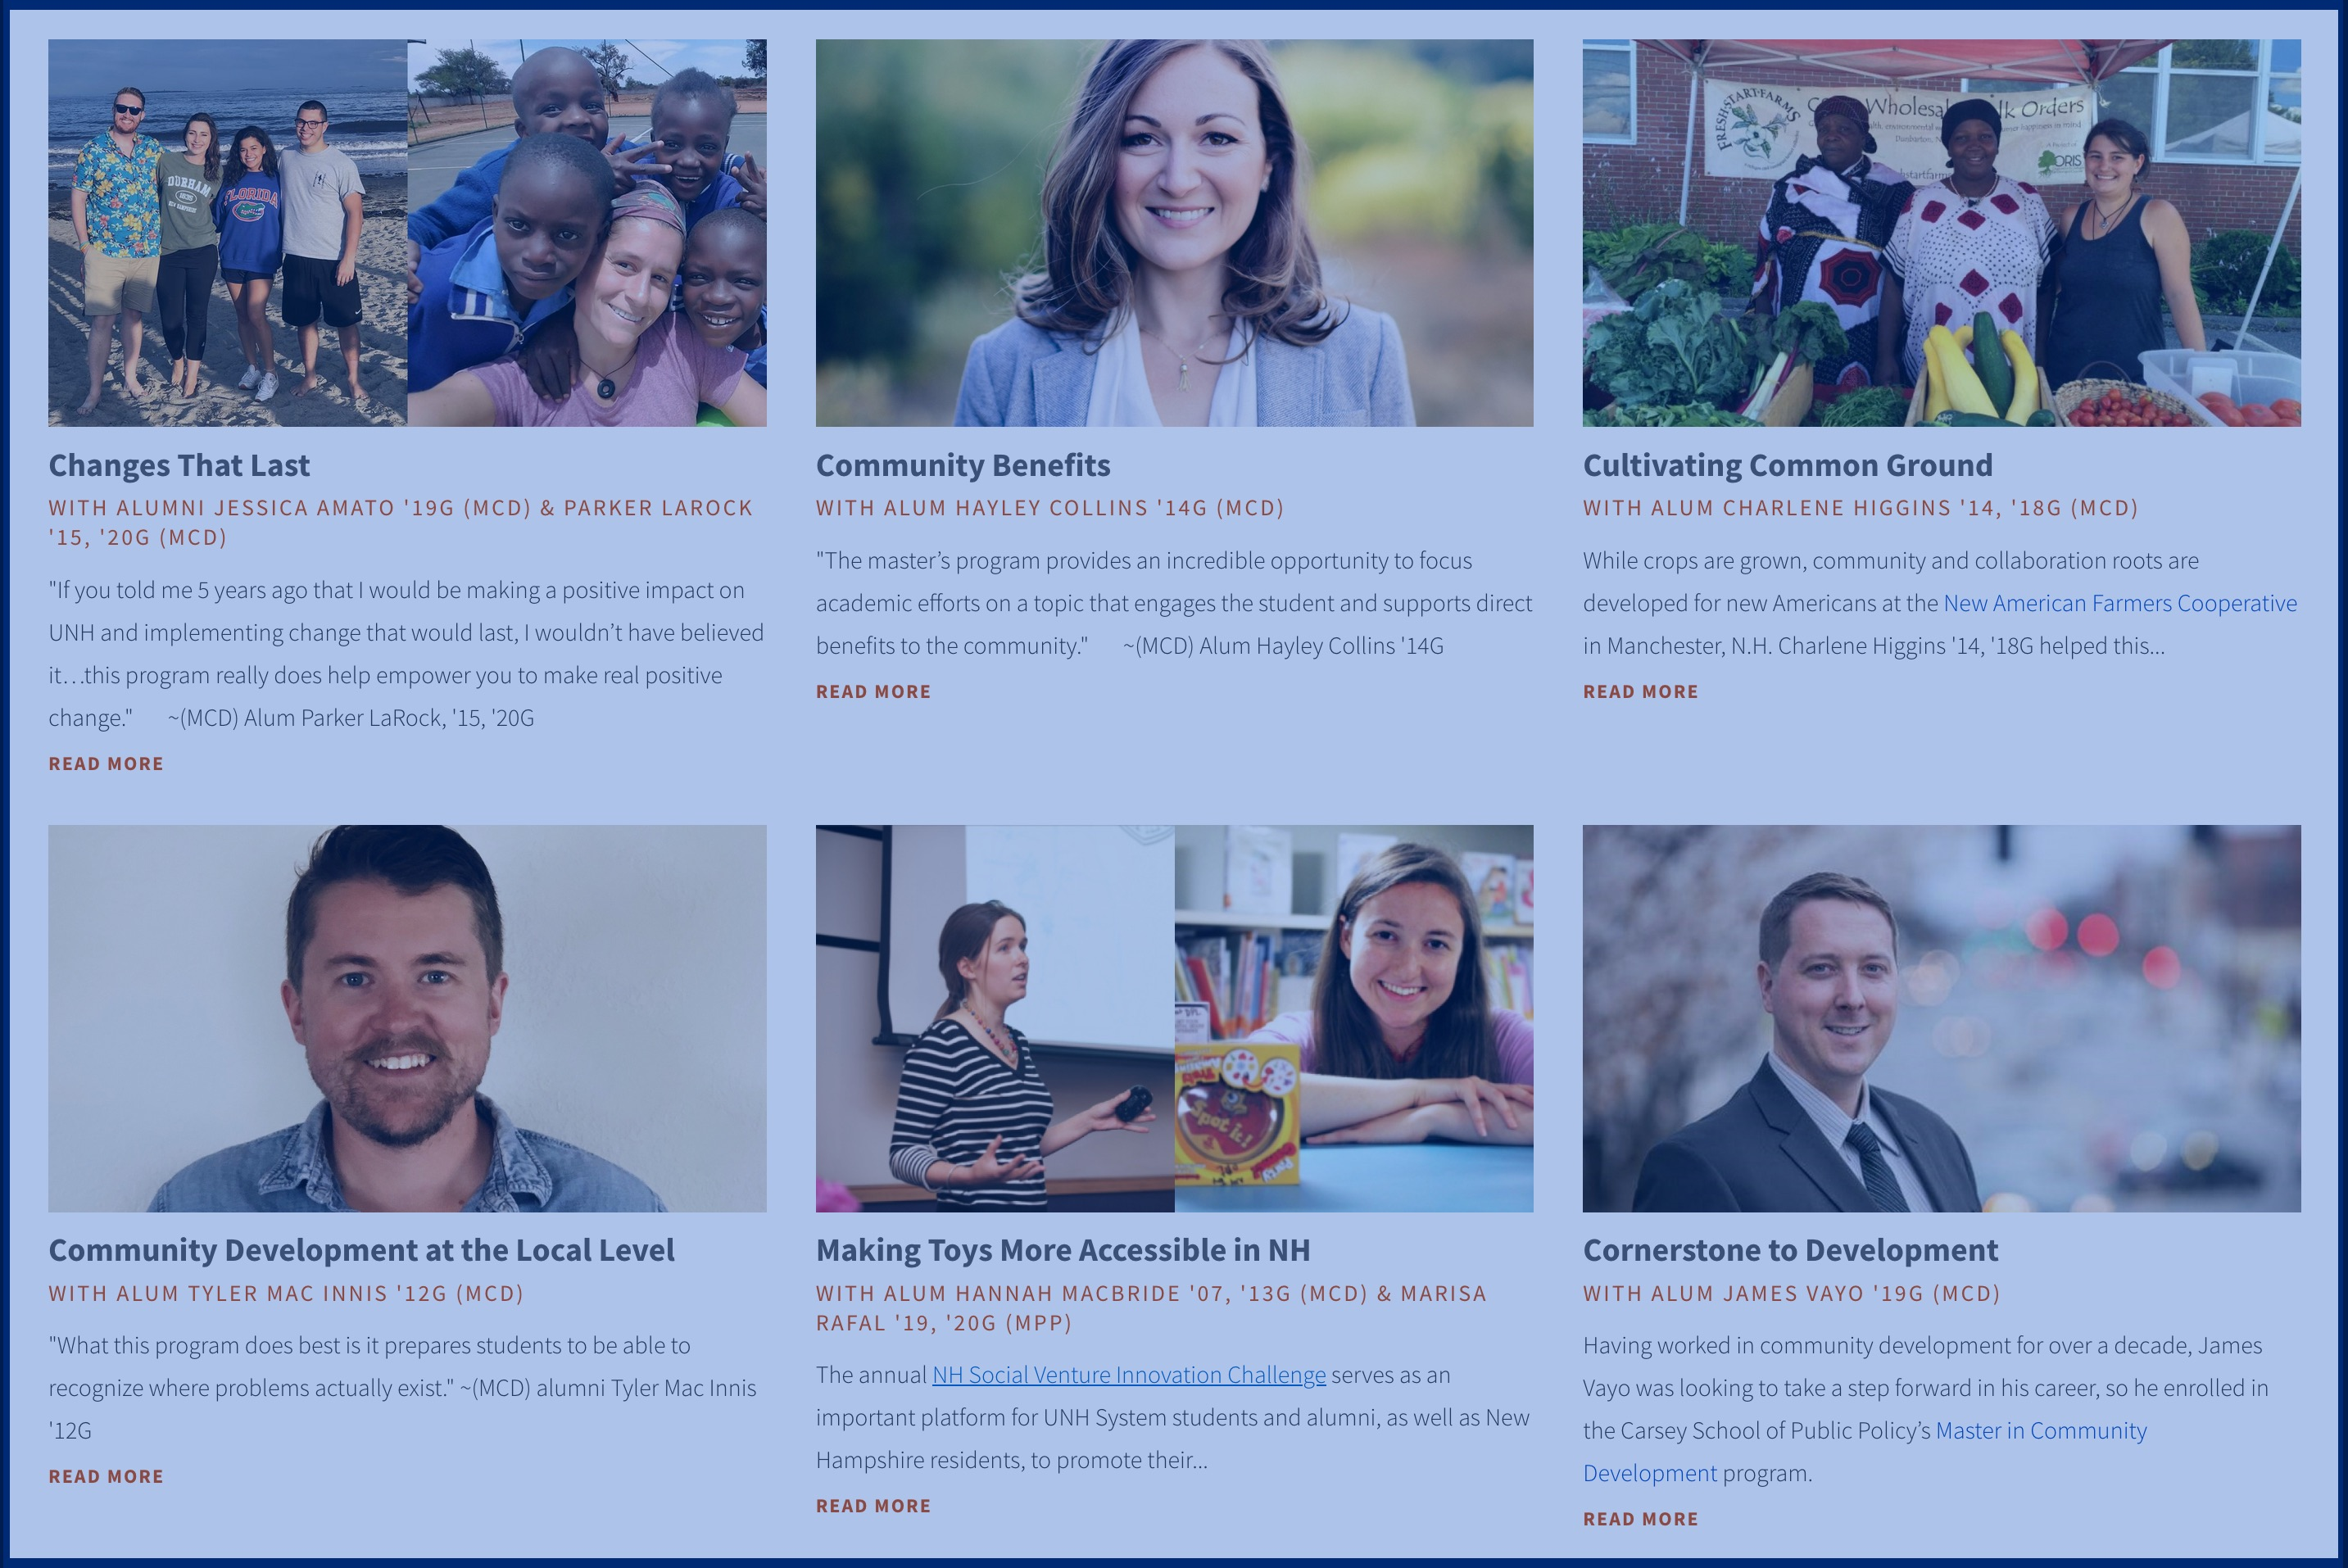 Photo of MCD students with links to their articles in square boxes with a blue covering